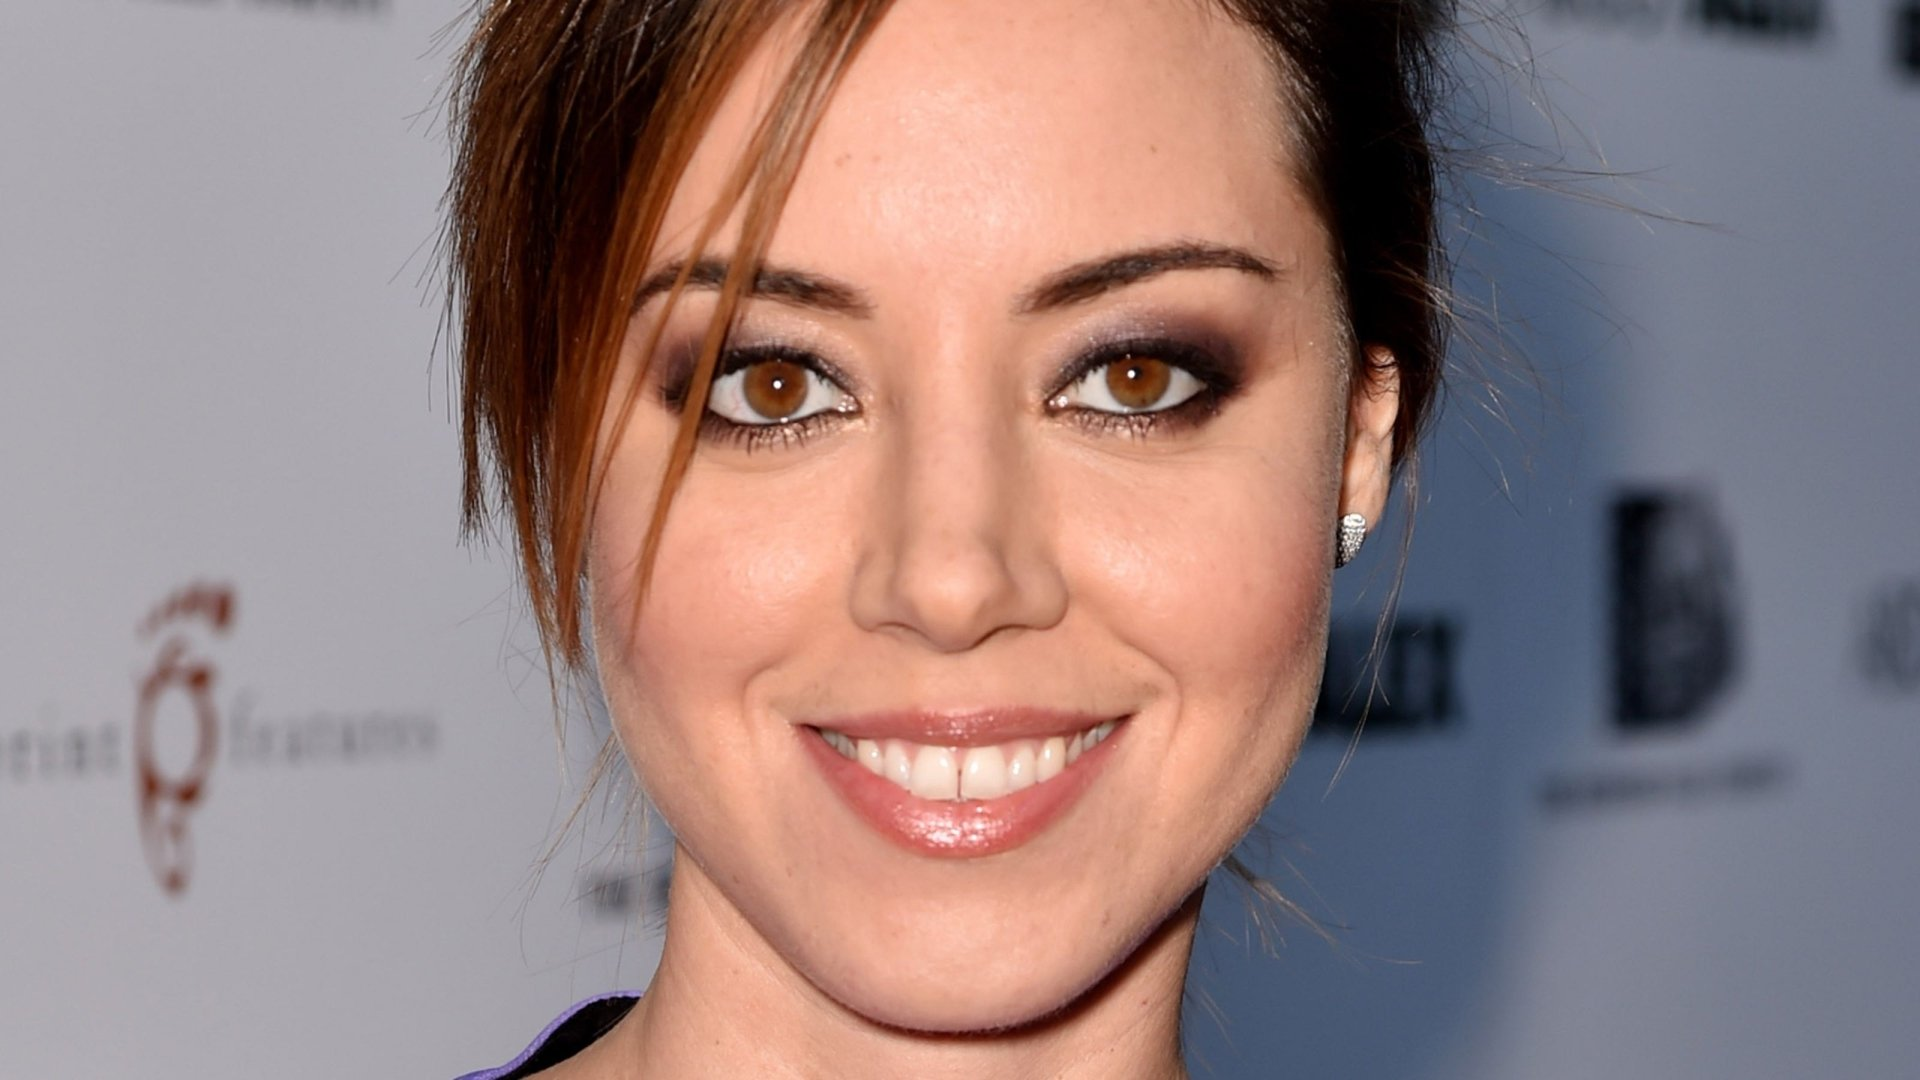 Celebrity - Aubrey Plaza  Actress American Brown Eyes Smile Face Wallpaper